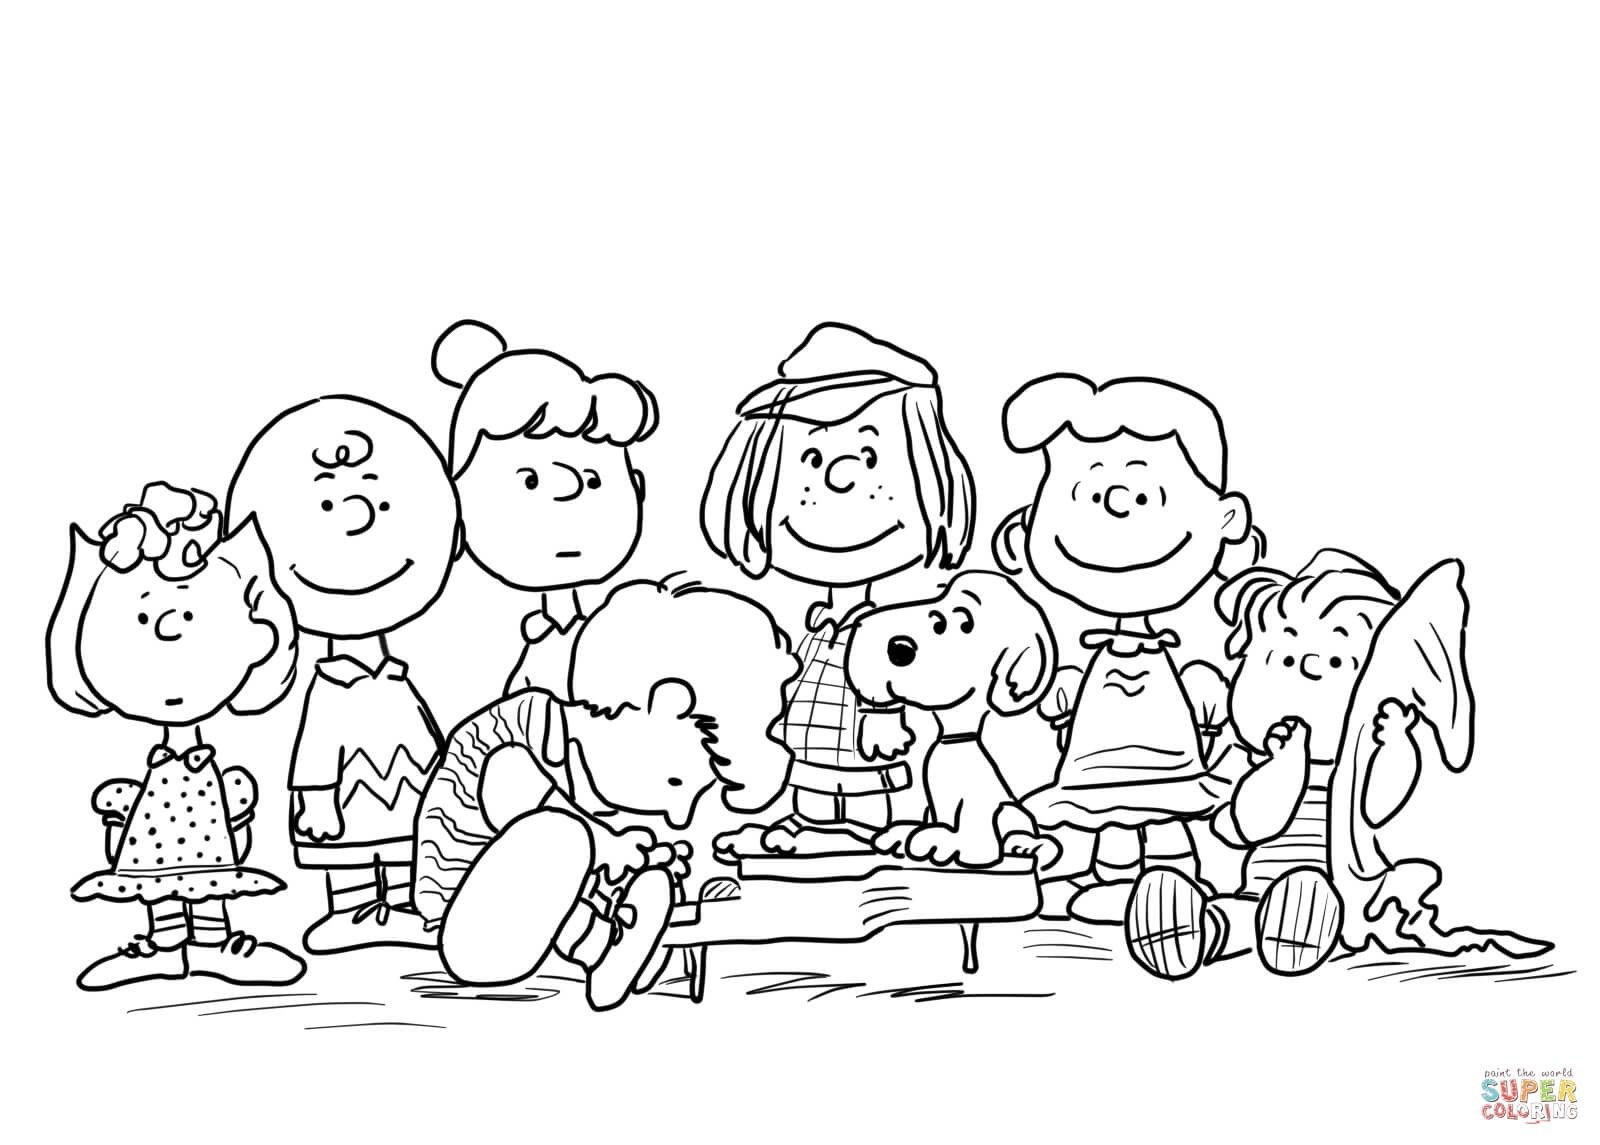 25 Best Image Of Peanuts Coloring Pages Thanksgiving Coloring